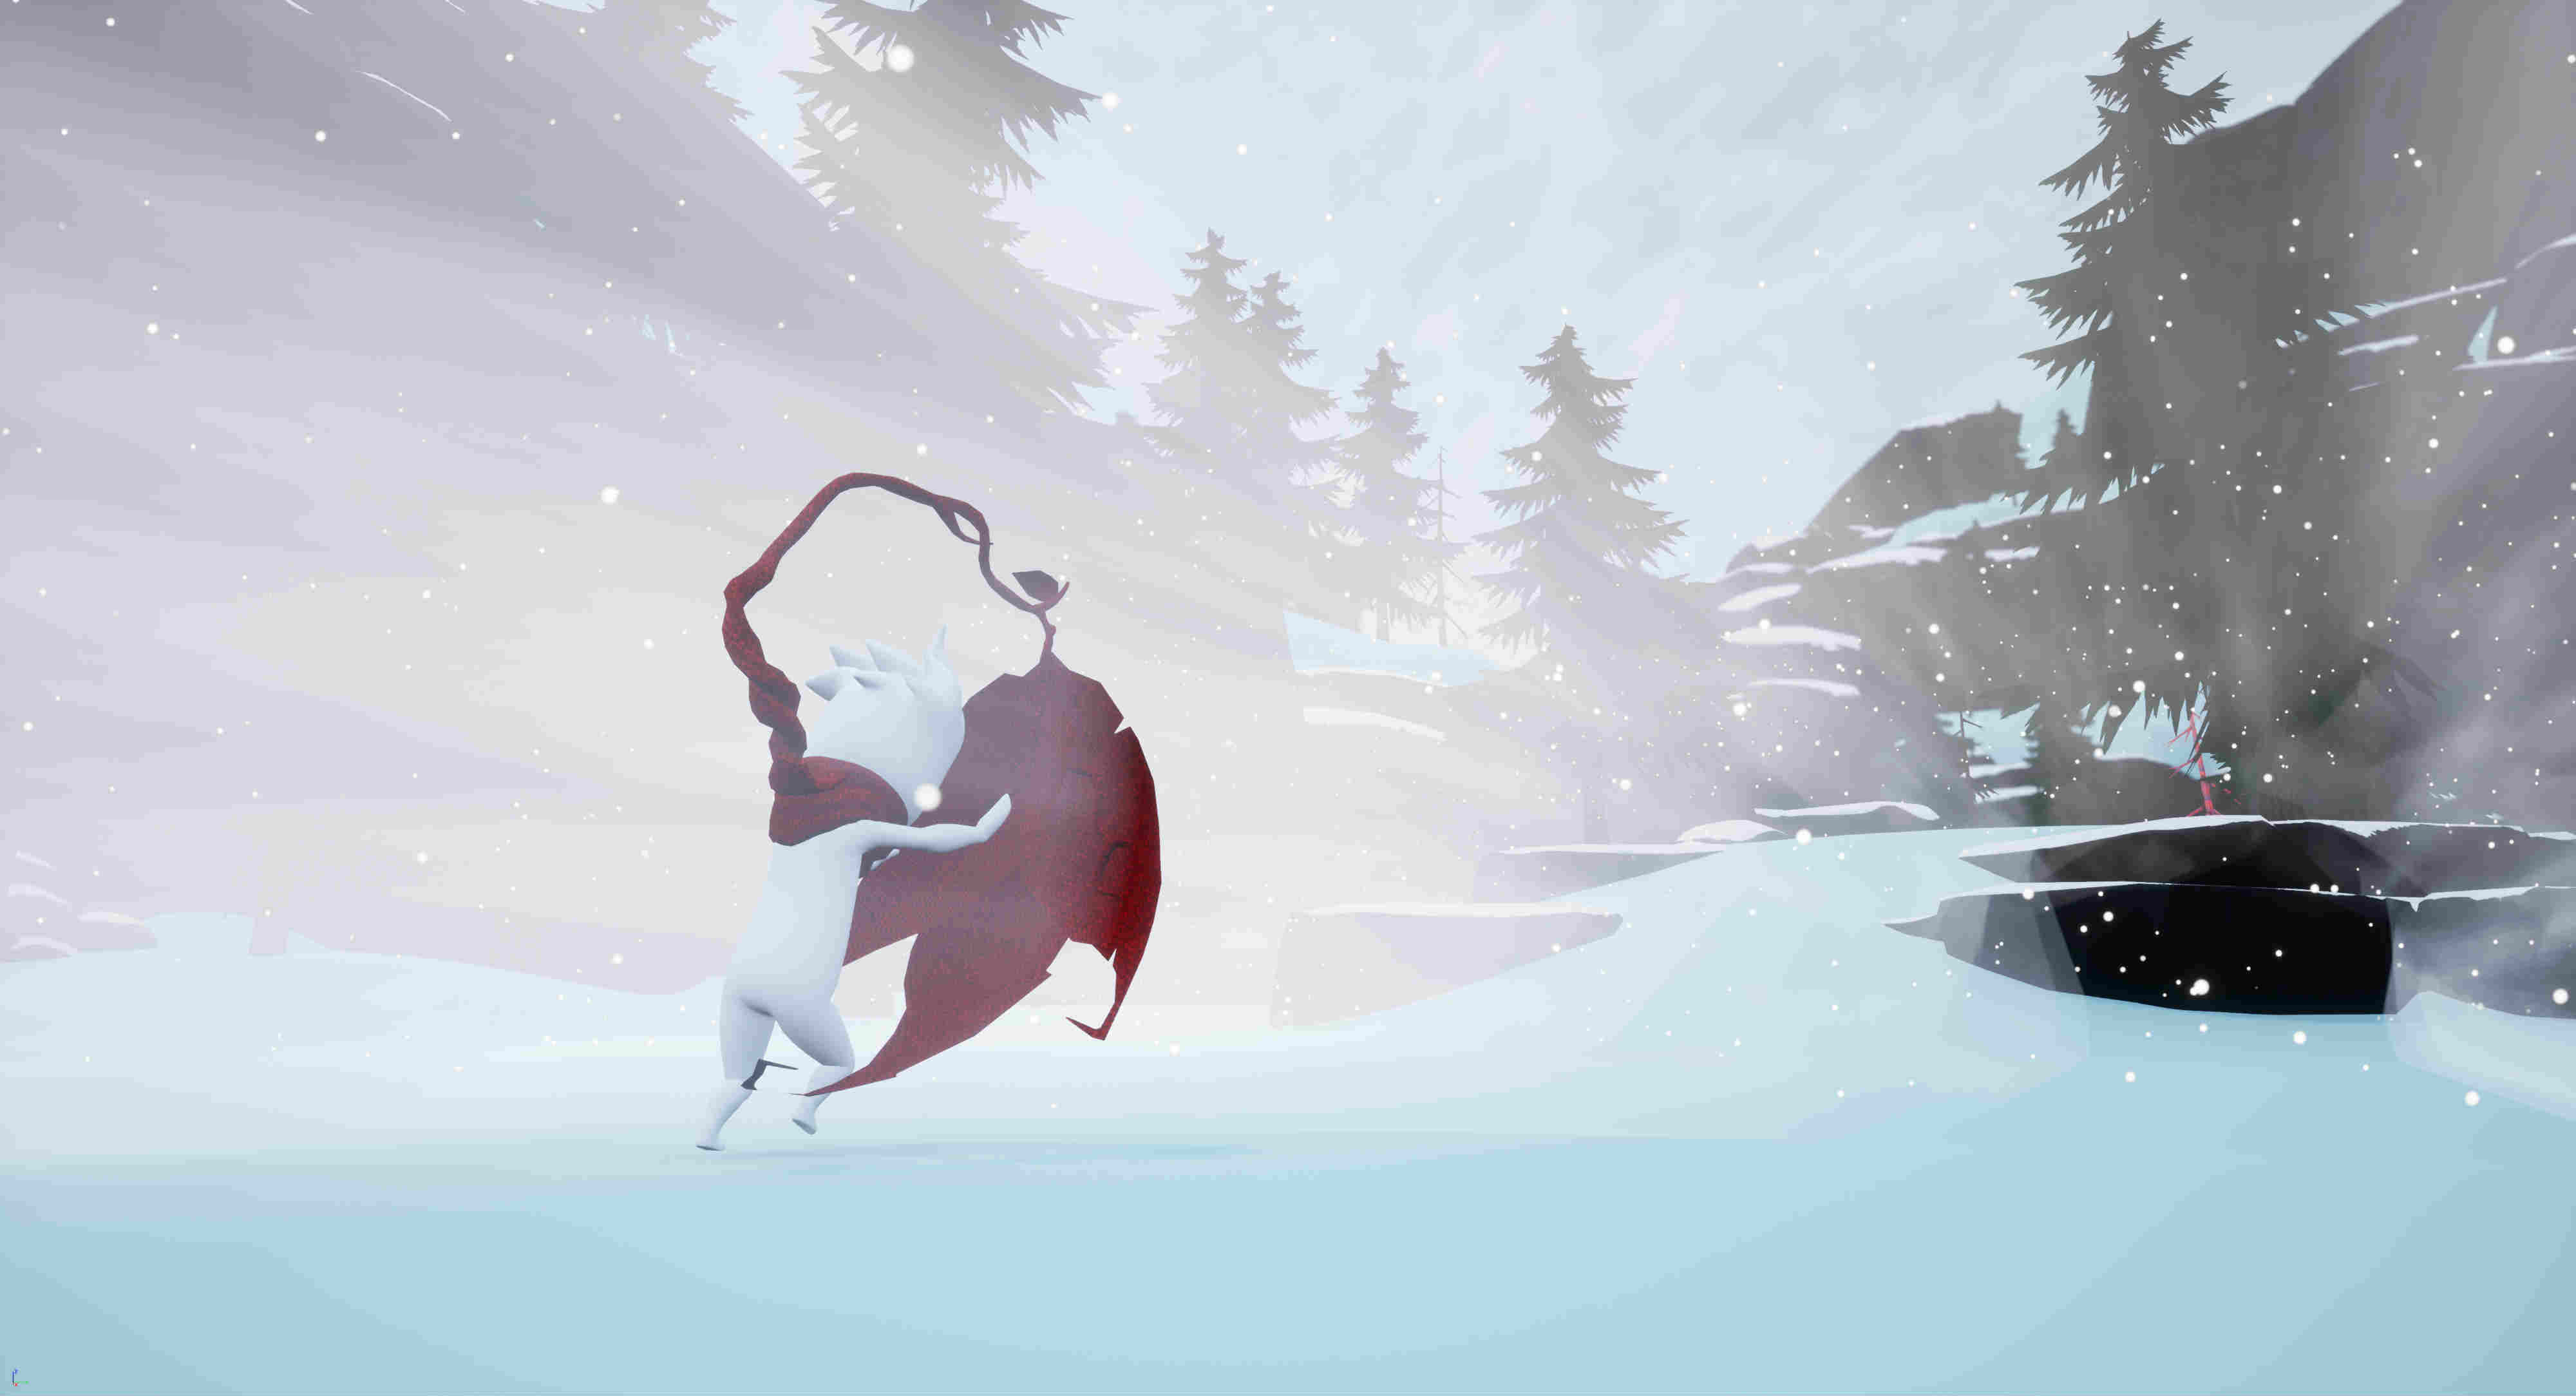 Scarf, a new 3D platformer with a sweet mascot, gives me life screenshot